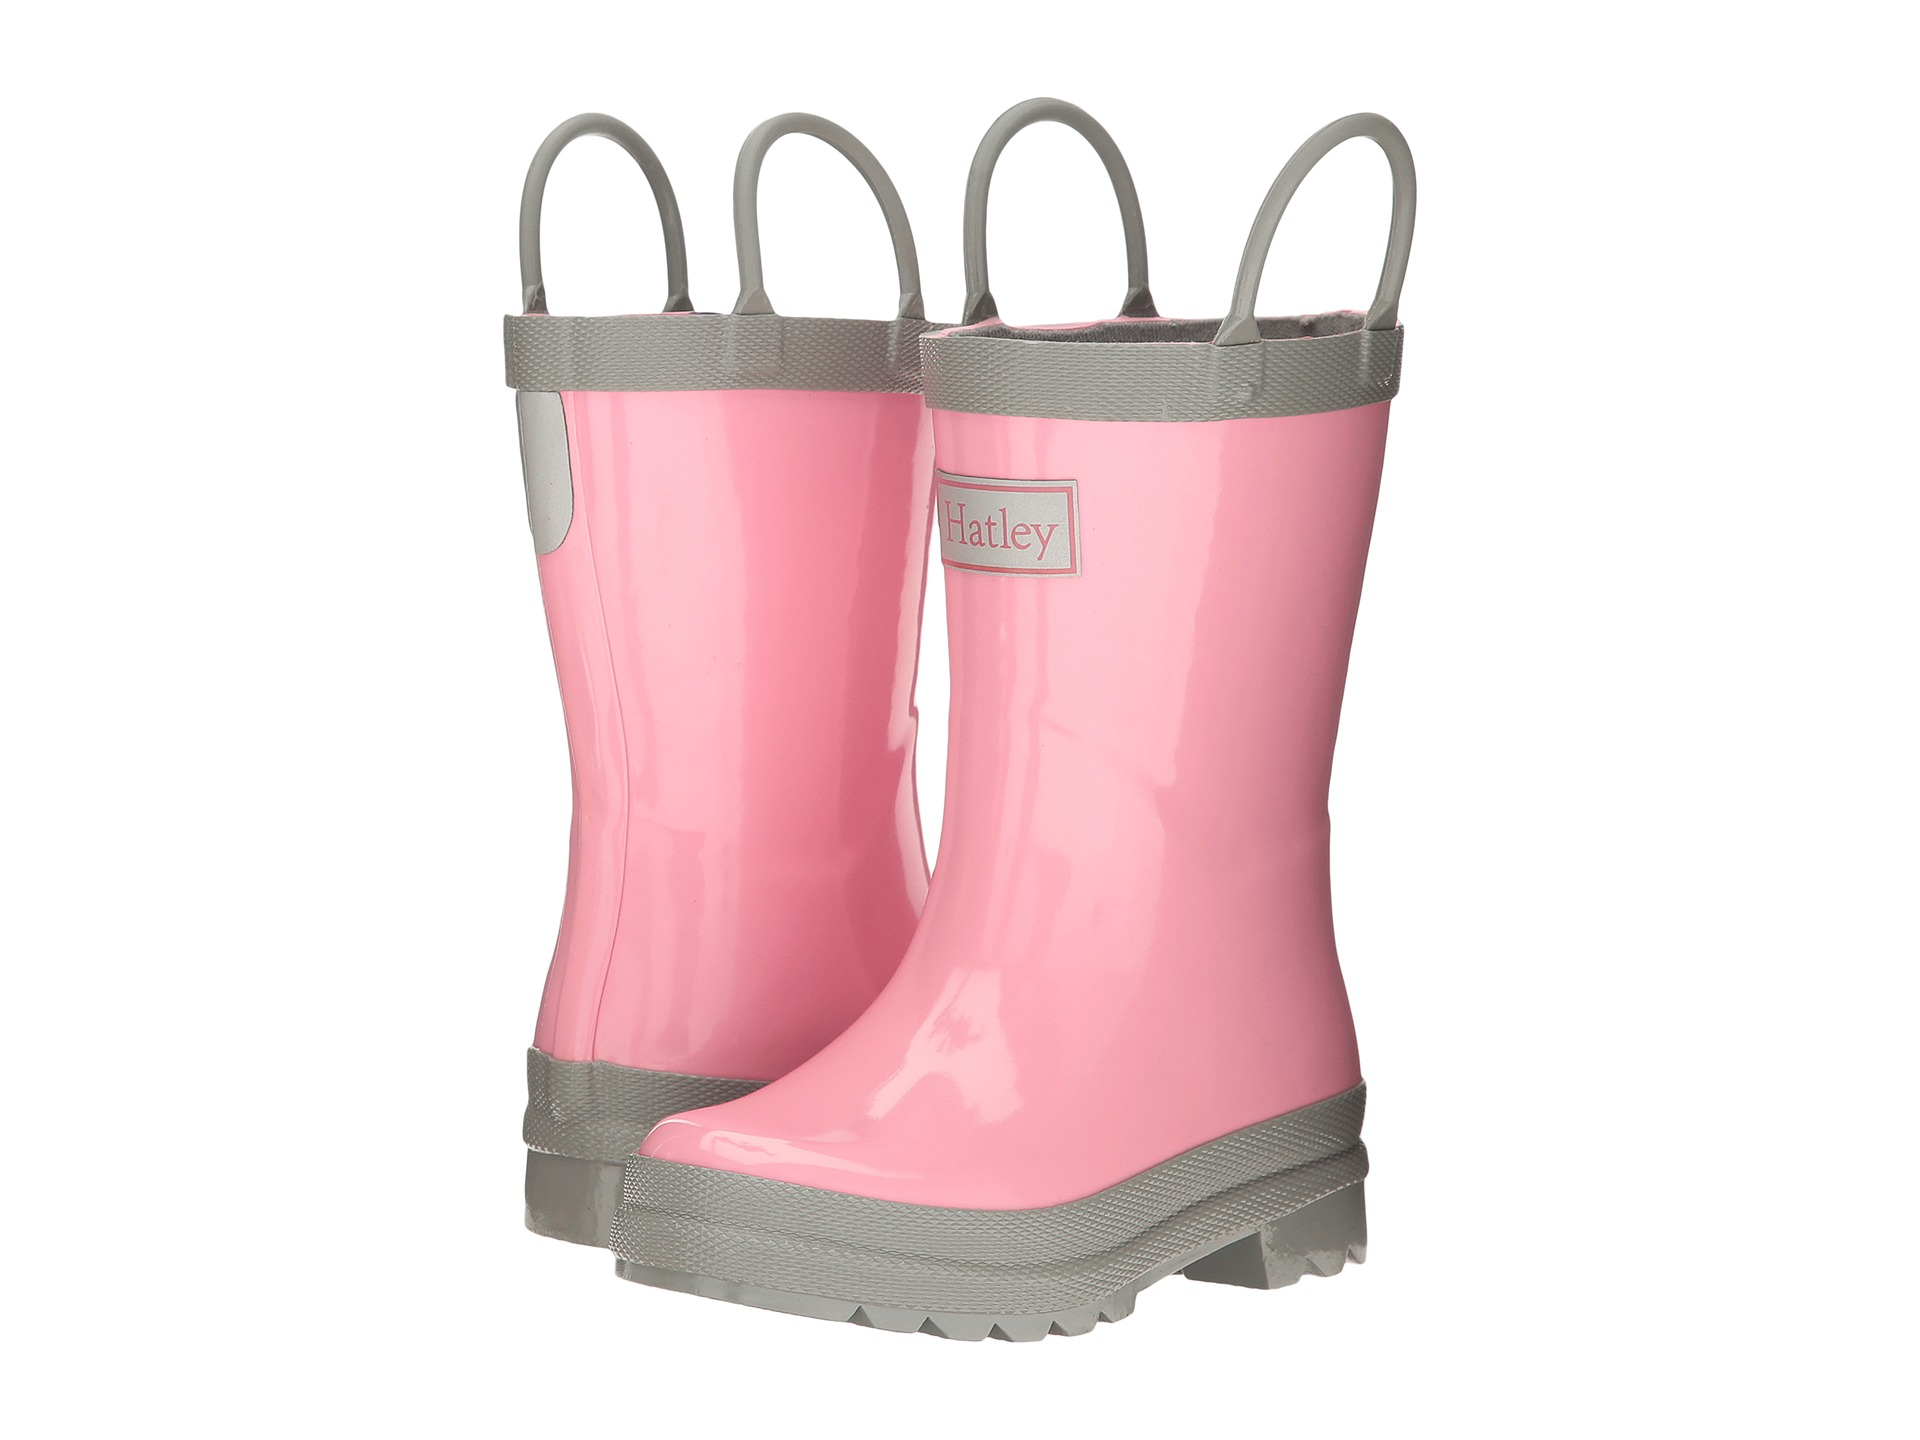 Shop Little Kids at the Official Hunter Boots Site, with free shipping on all orders.